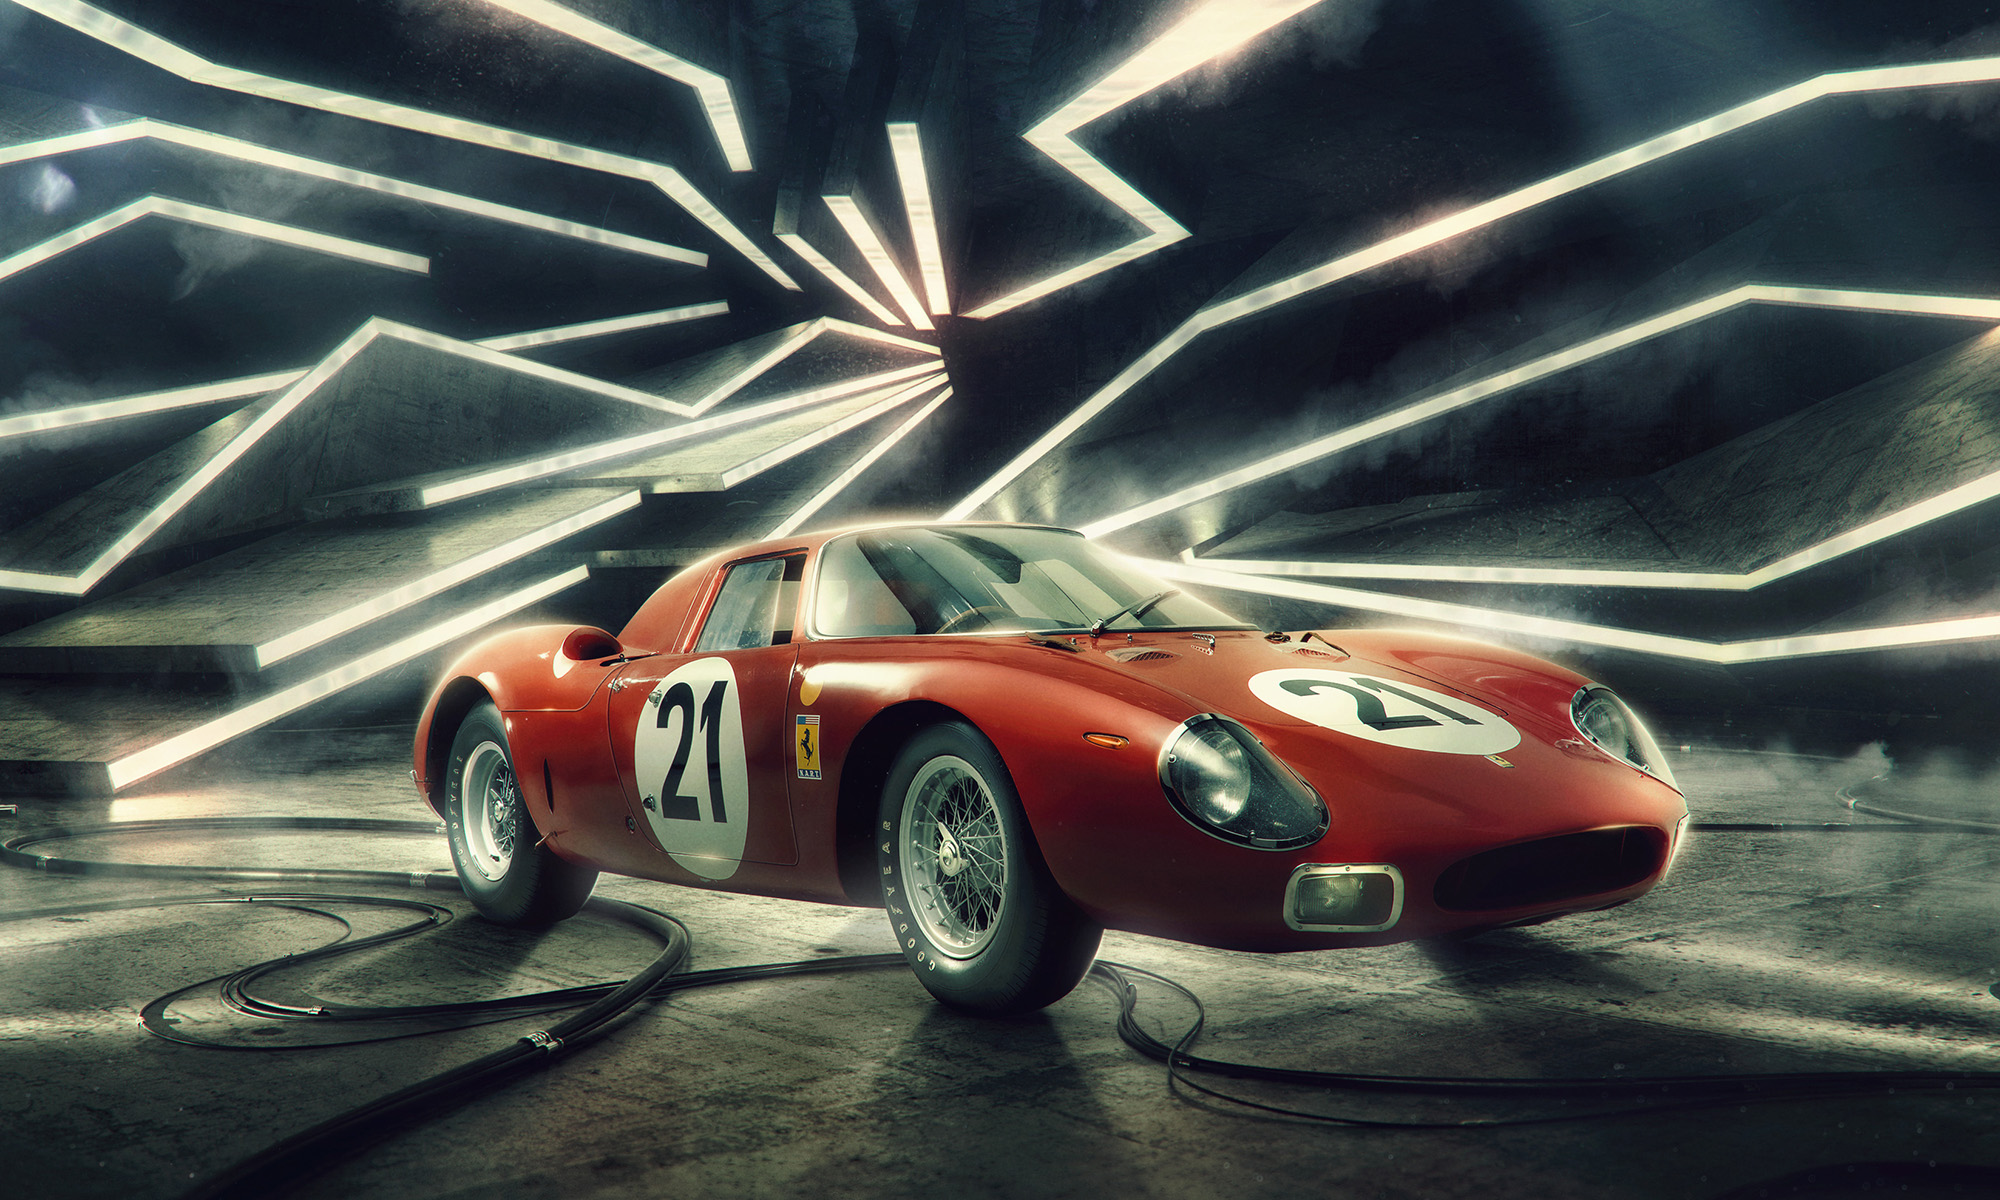 Ferrari 250 LM by Car Photographer Blair Bunting